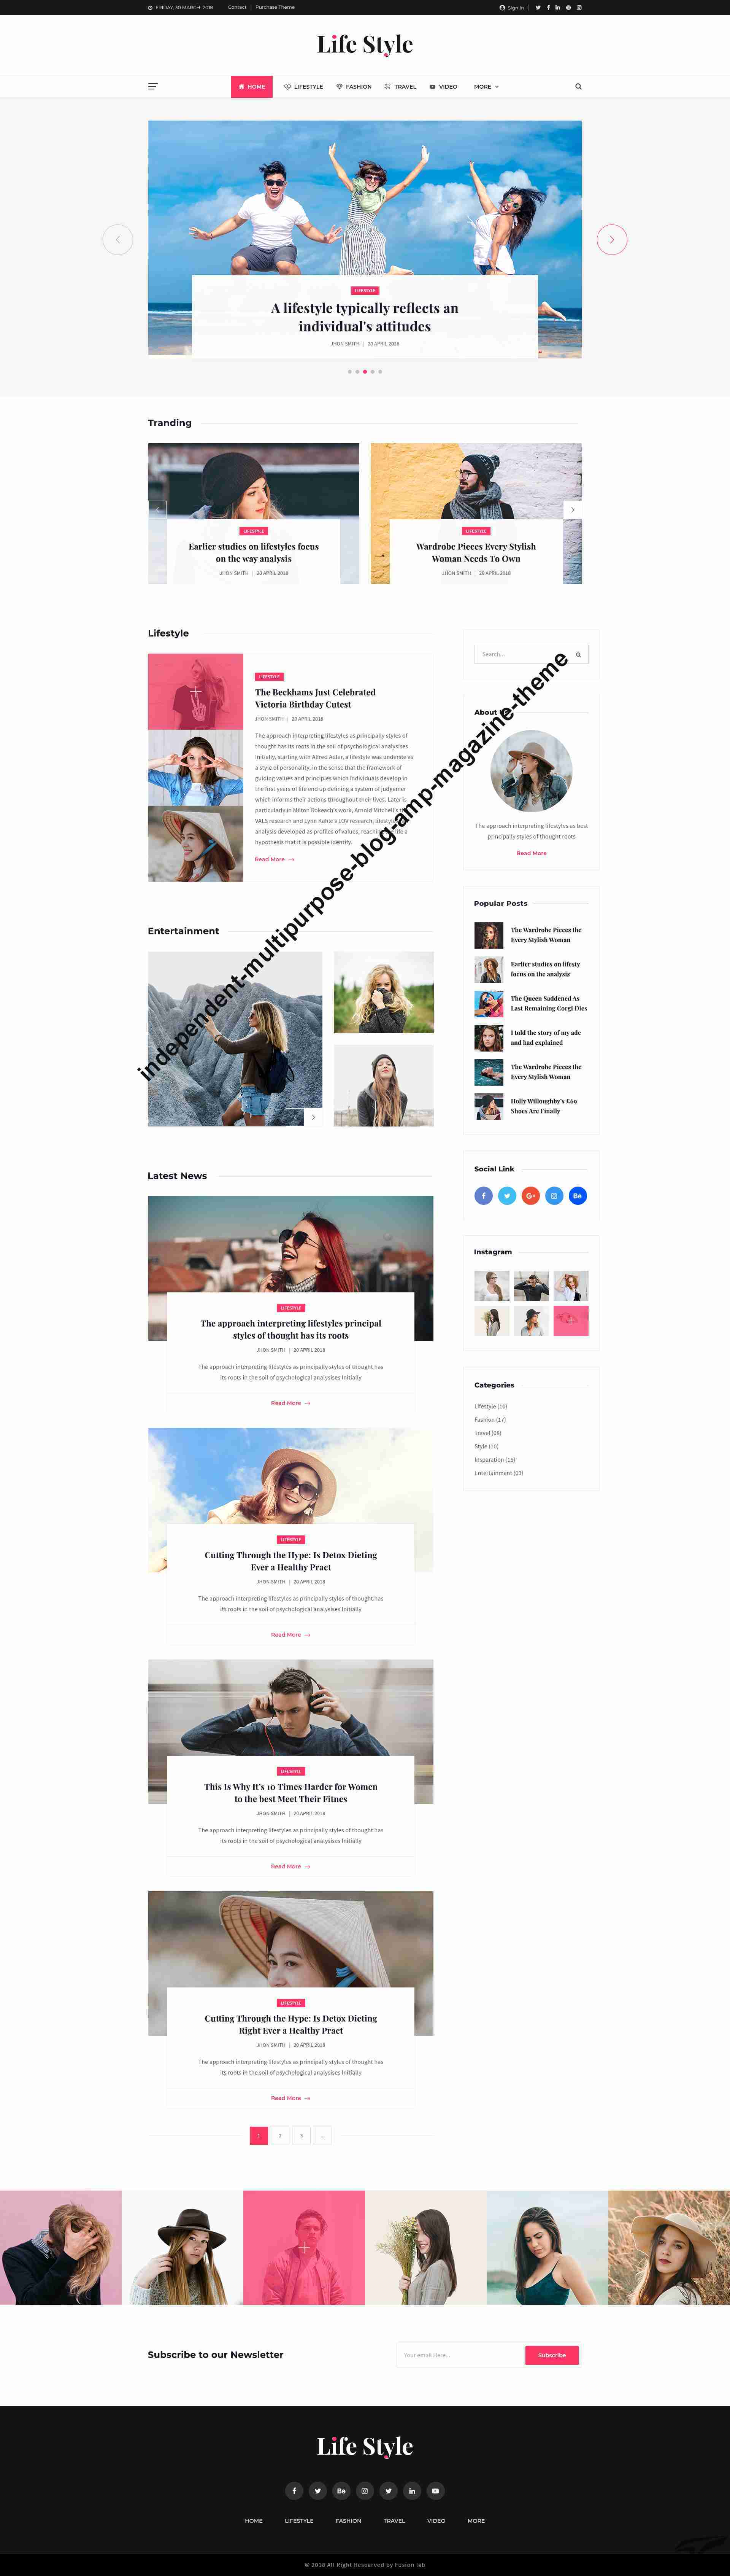 https://images.besthemes.com/images/h1_independent-multipurpose-blog-amp-magazine-theme10-_-249989416/Theme-s20s-Preview/09-Life-s20s-Style.jpg